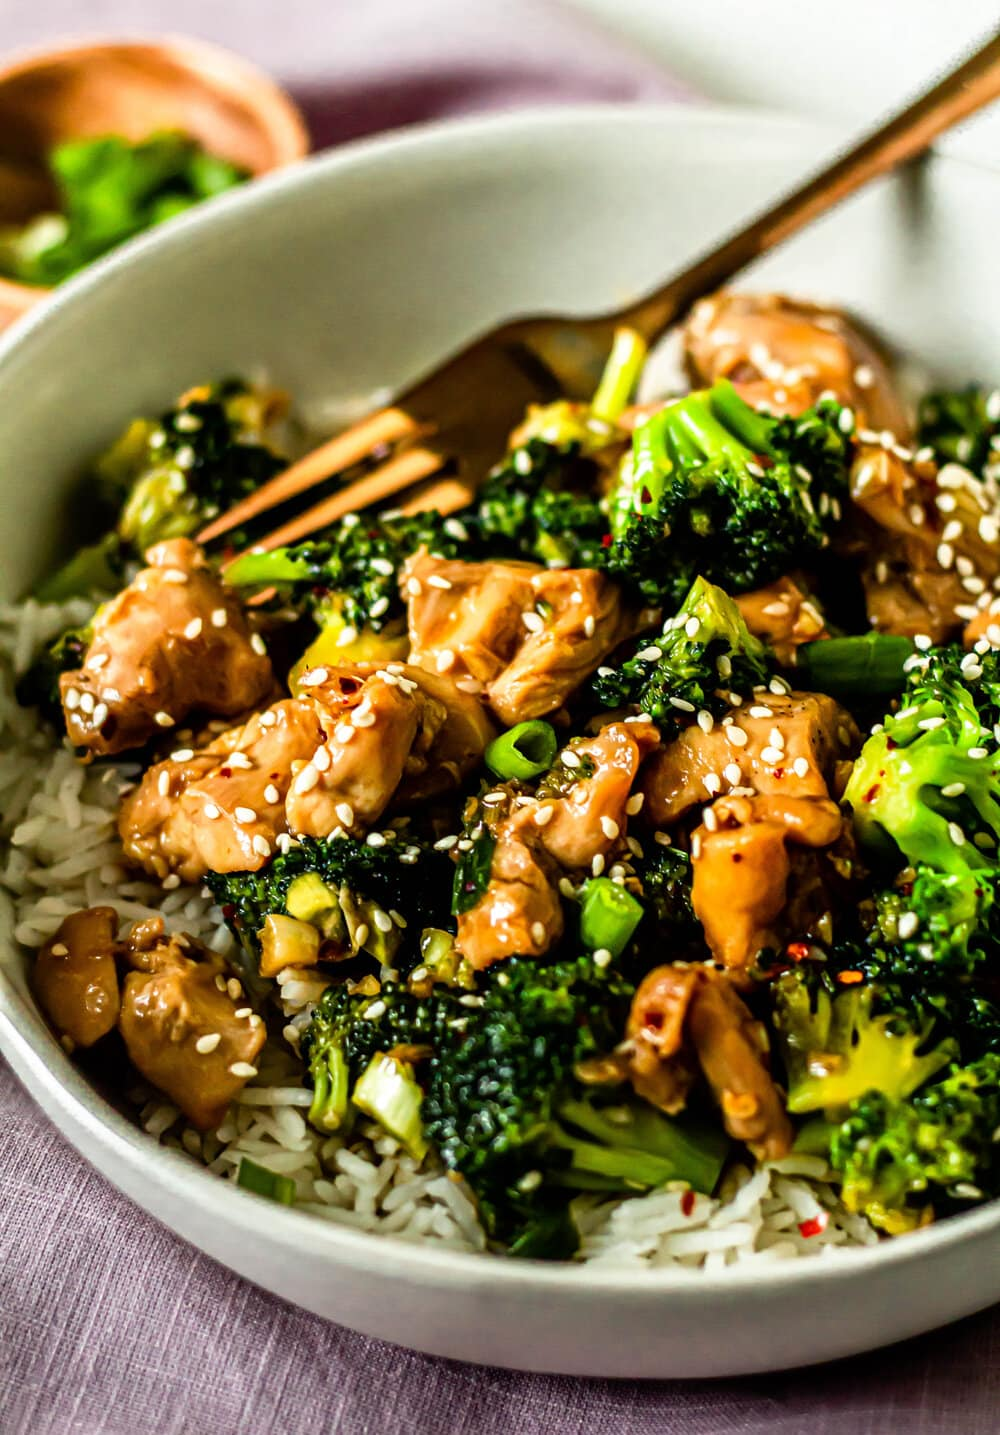 chicken and broccoli stir fry over rice